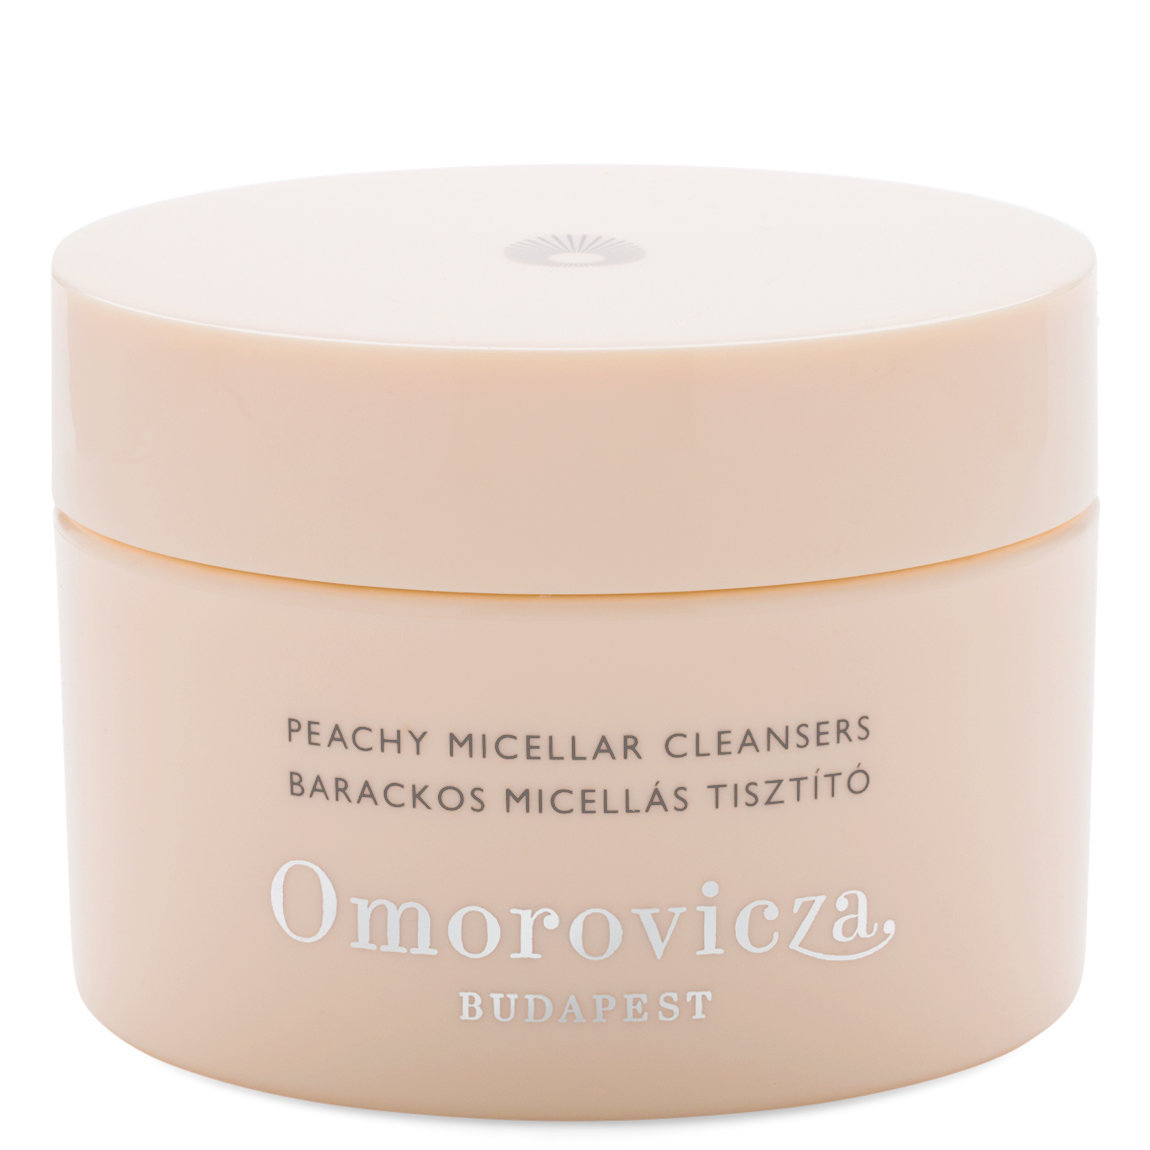 Omorovicza Peachy Micellar Cleansers alternative view 1 - product swatch.